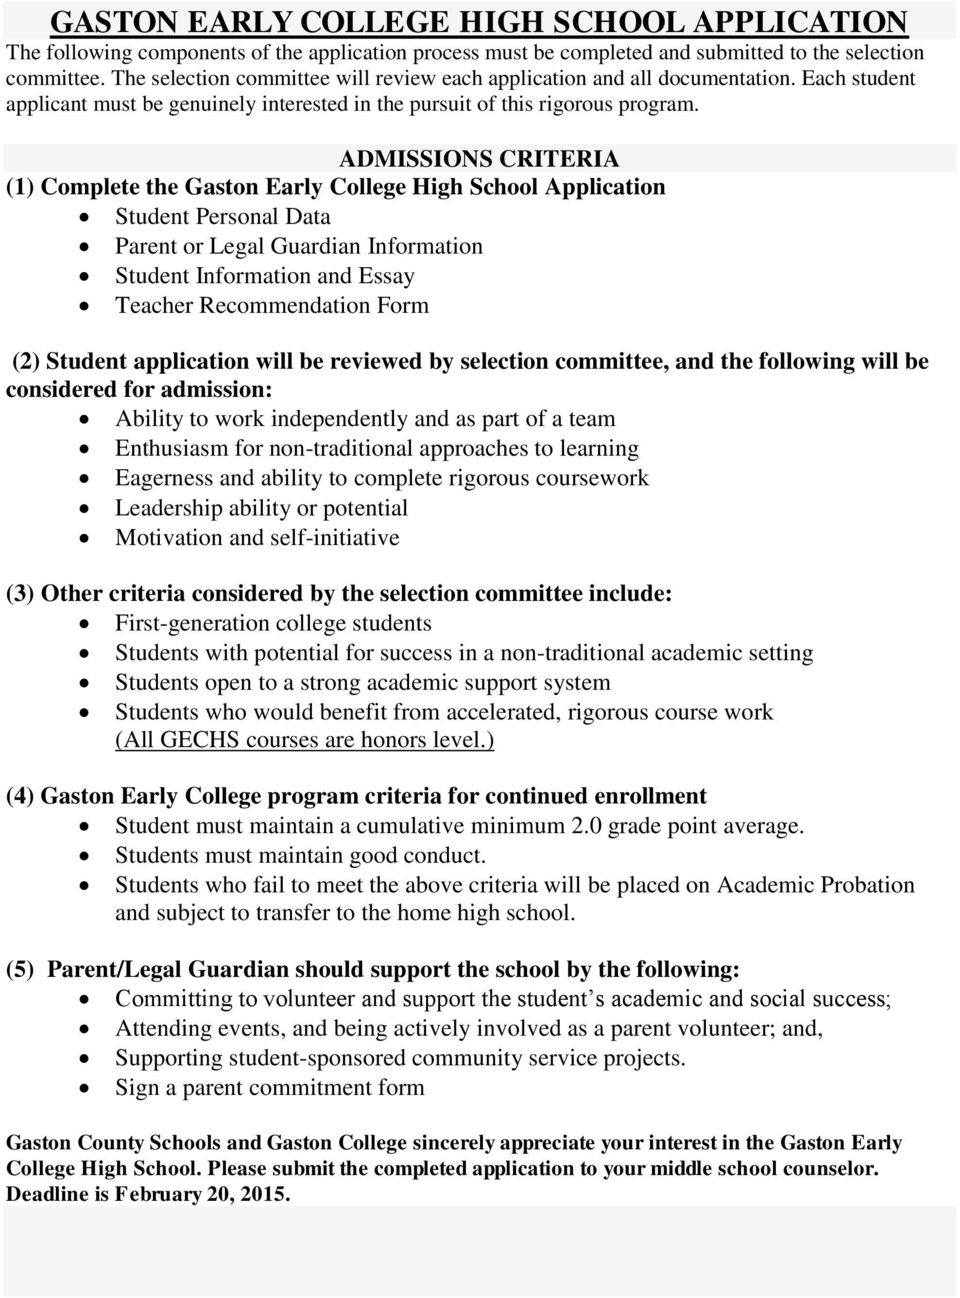 ADMISSIONS CRITERIA (1) Complete The Gaston Early College High School  Application Student Personal Data